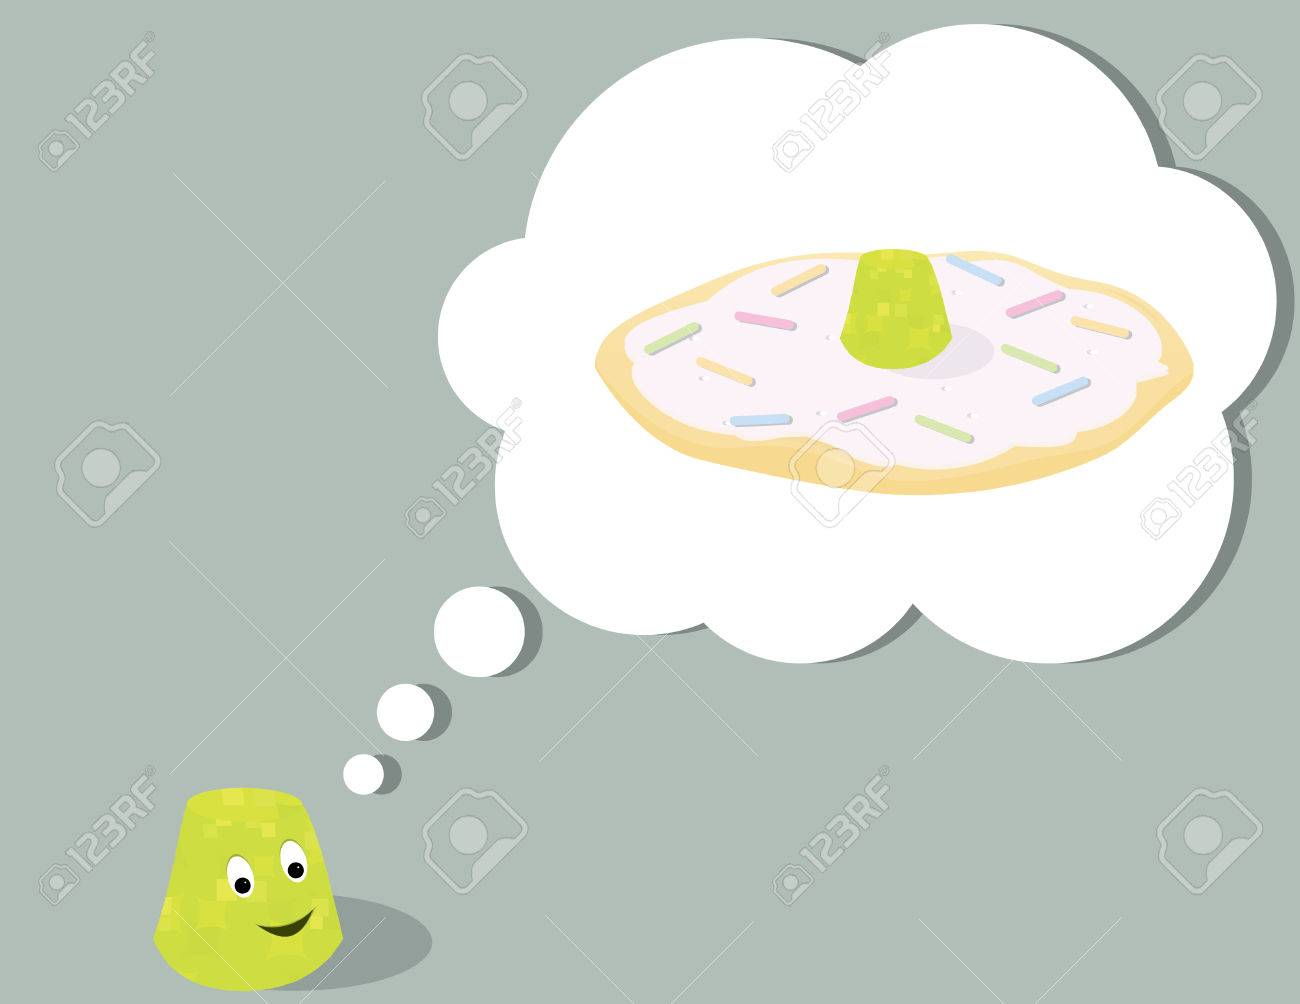 Smiling gumdrop thinking of a cookie all on a gray background Stock Vector - 6468234